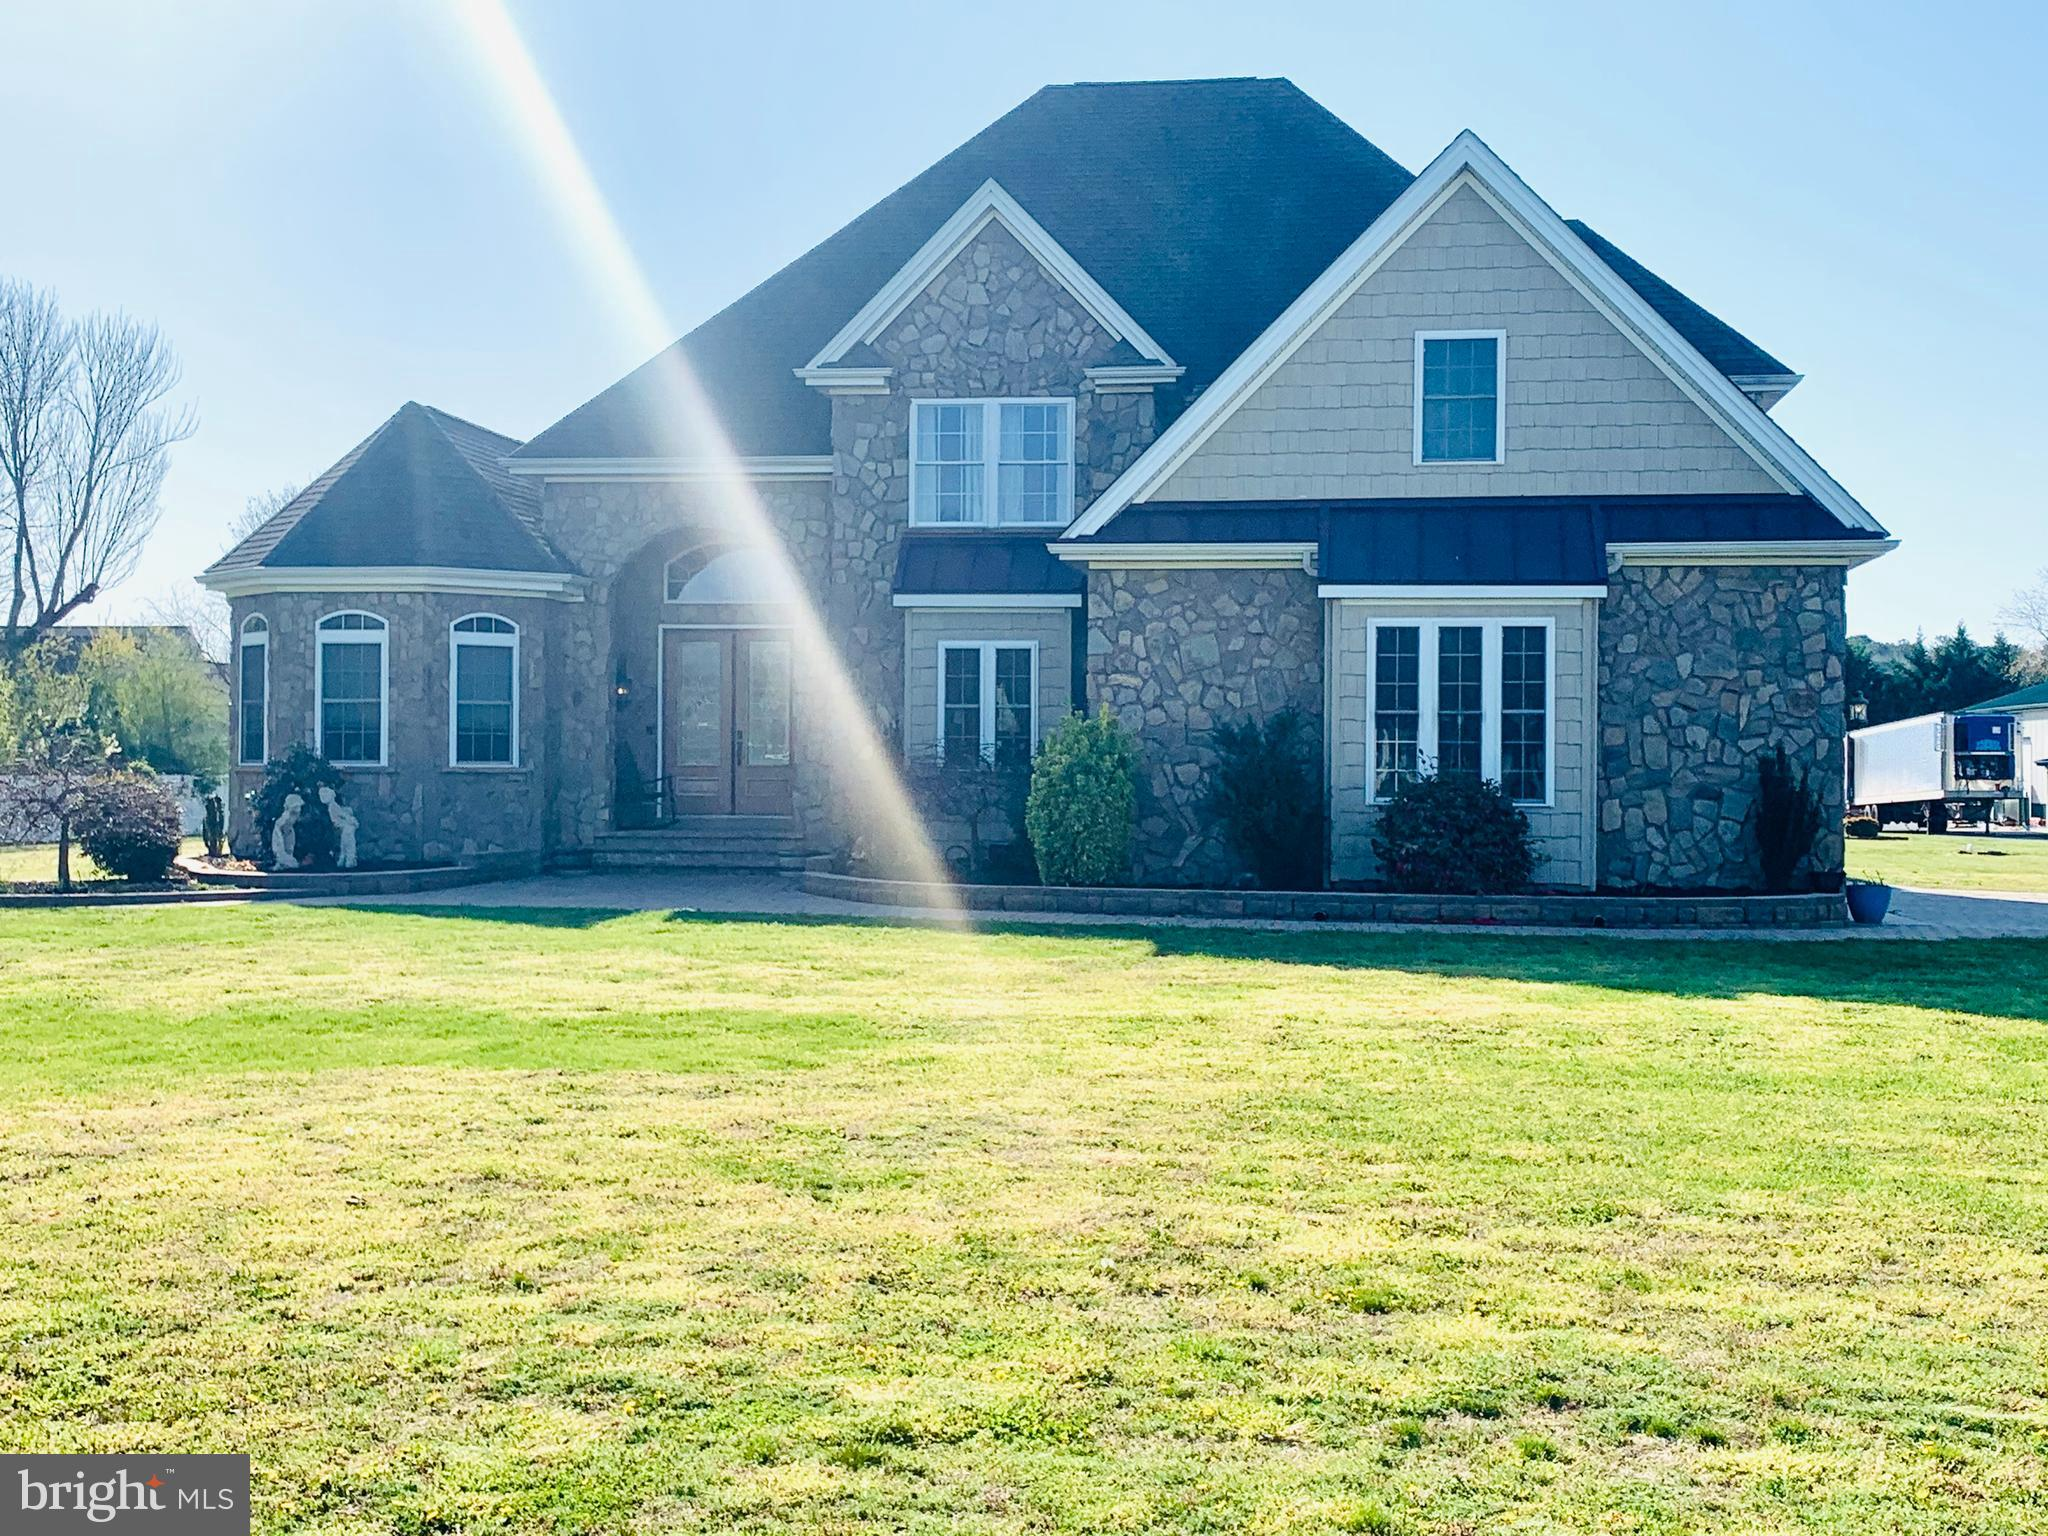 This immaculate home boasts 3000+/- square feet of living space and a two car attached garage on 3+/- acres in a quiet setting.